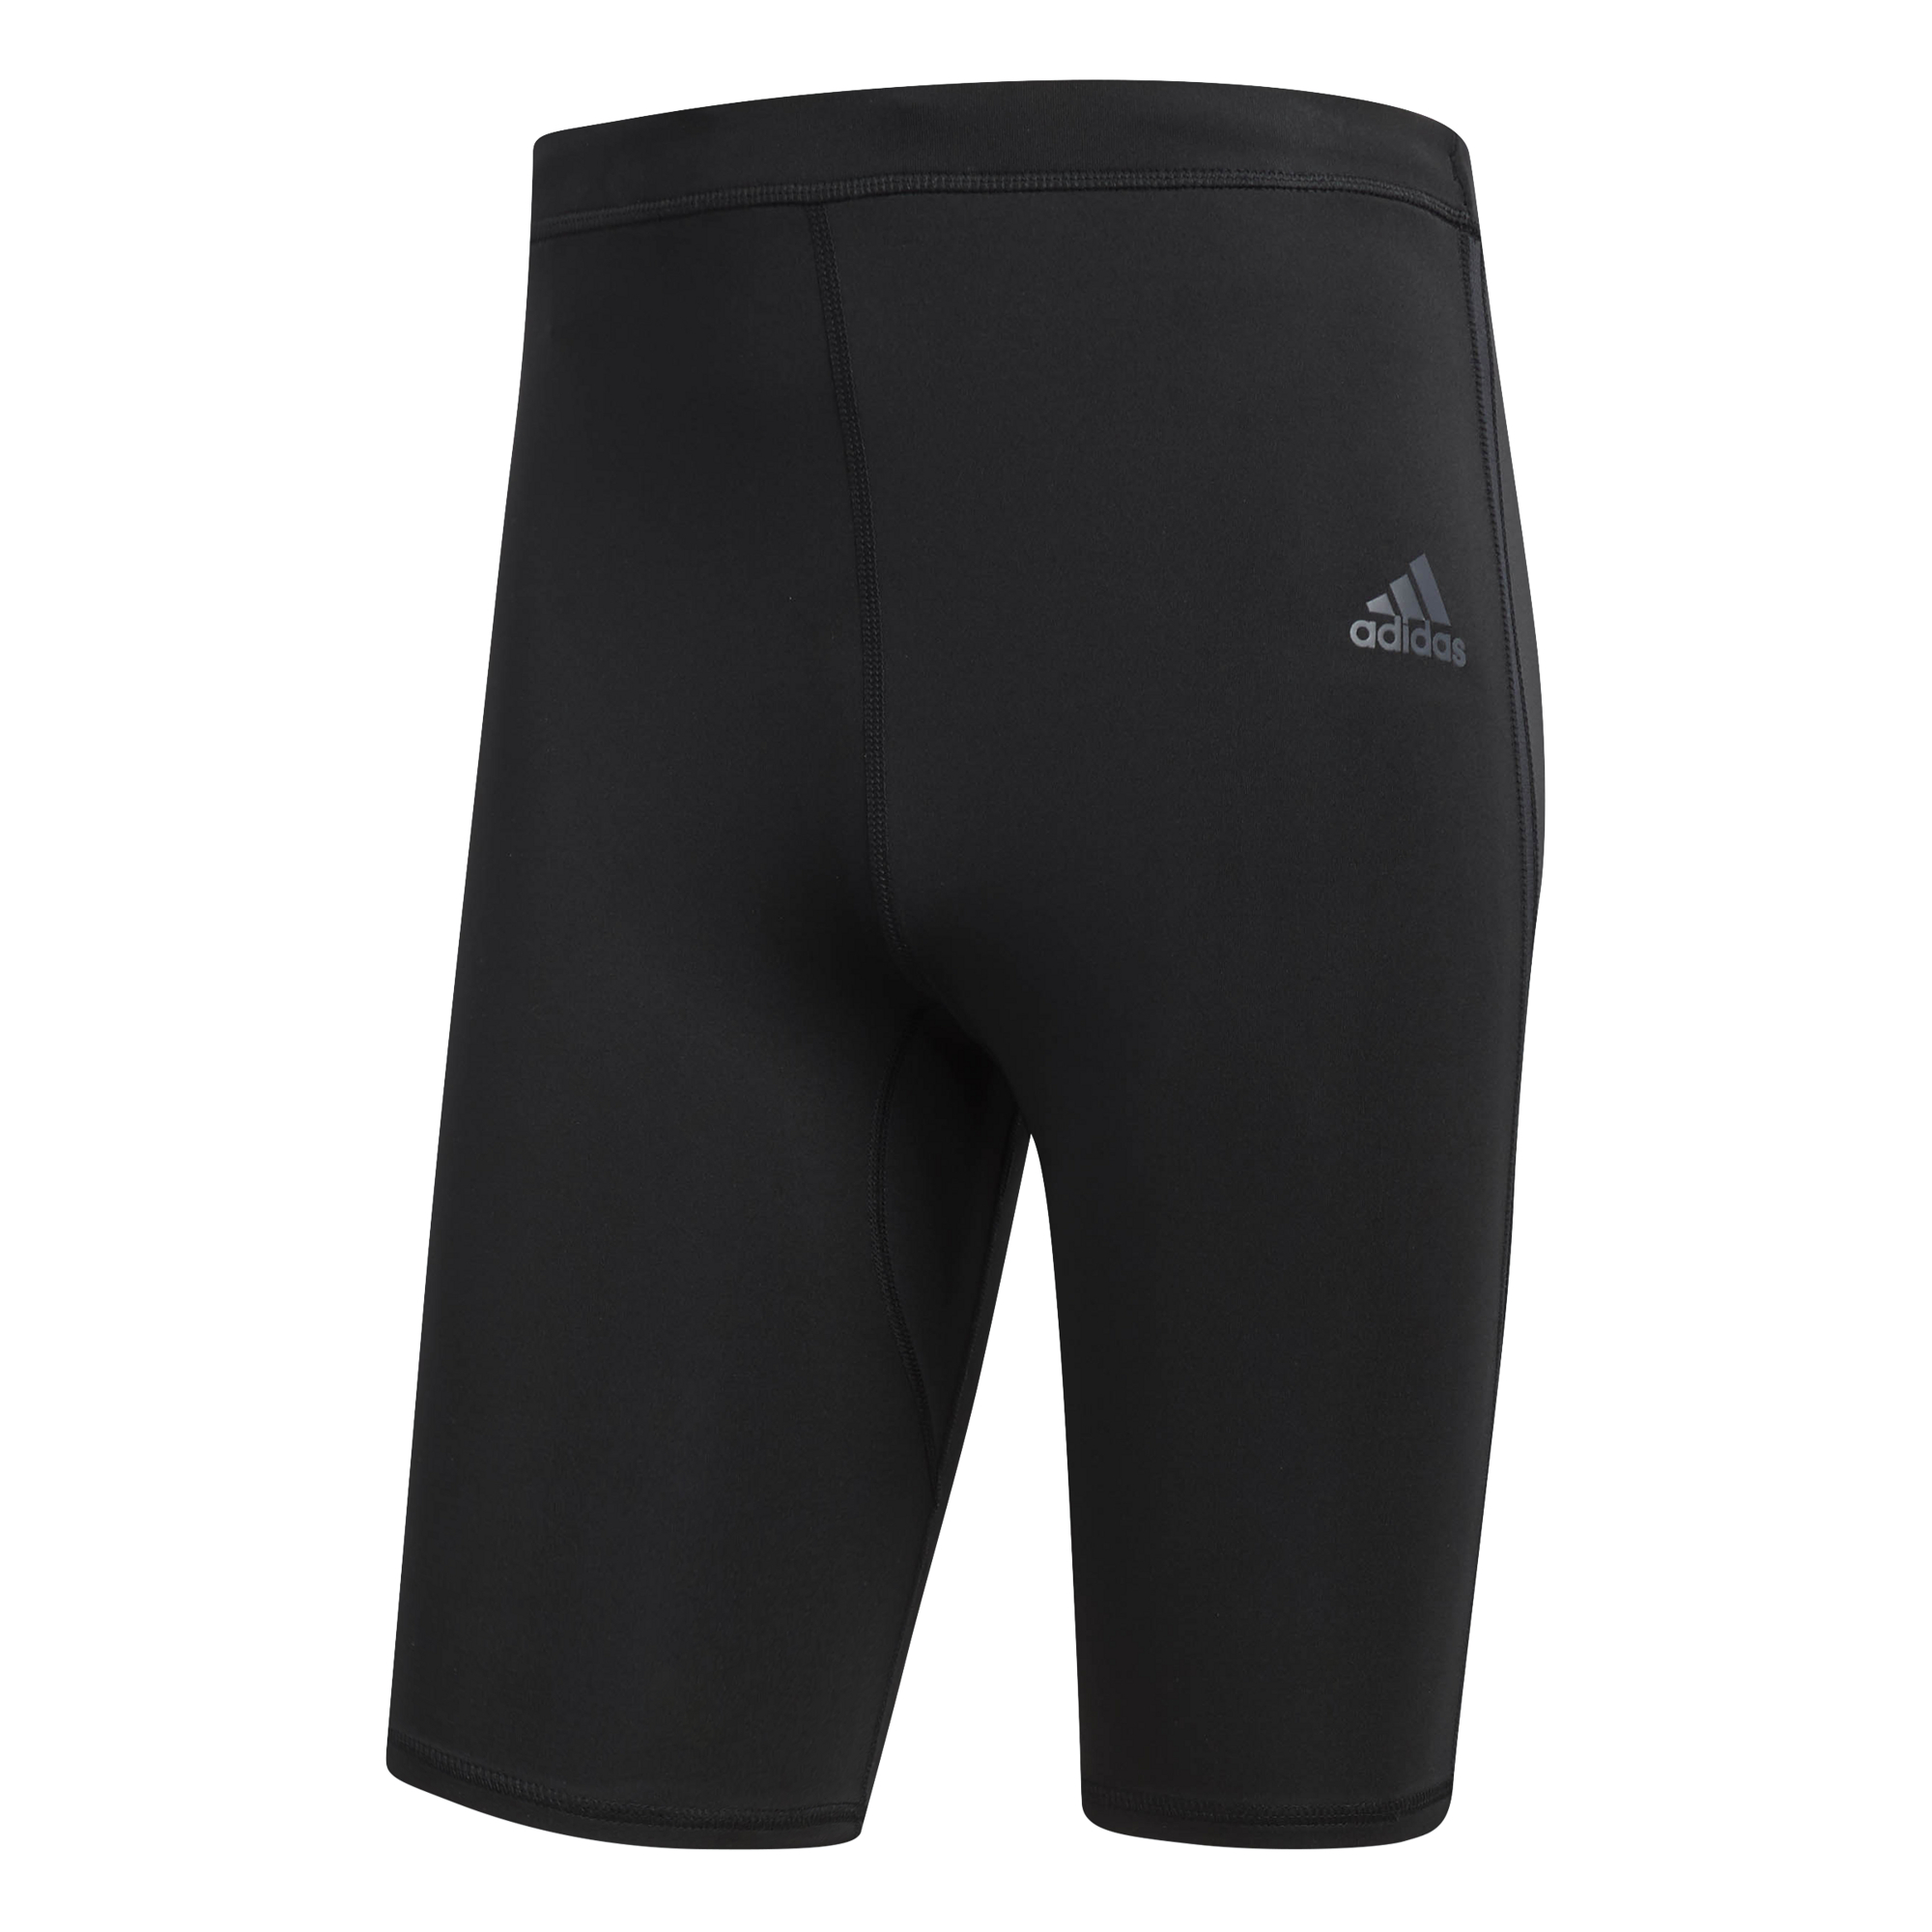 Shorts | adidas | Response Short Tight | Wiggle France